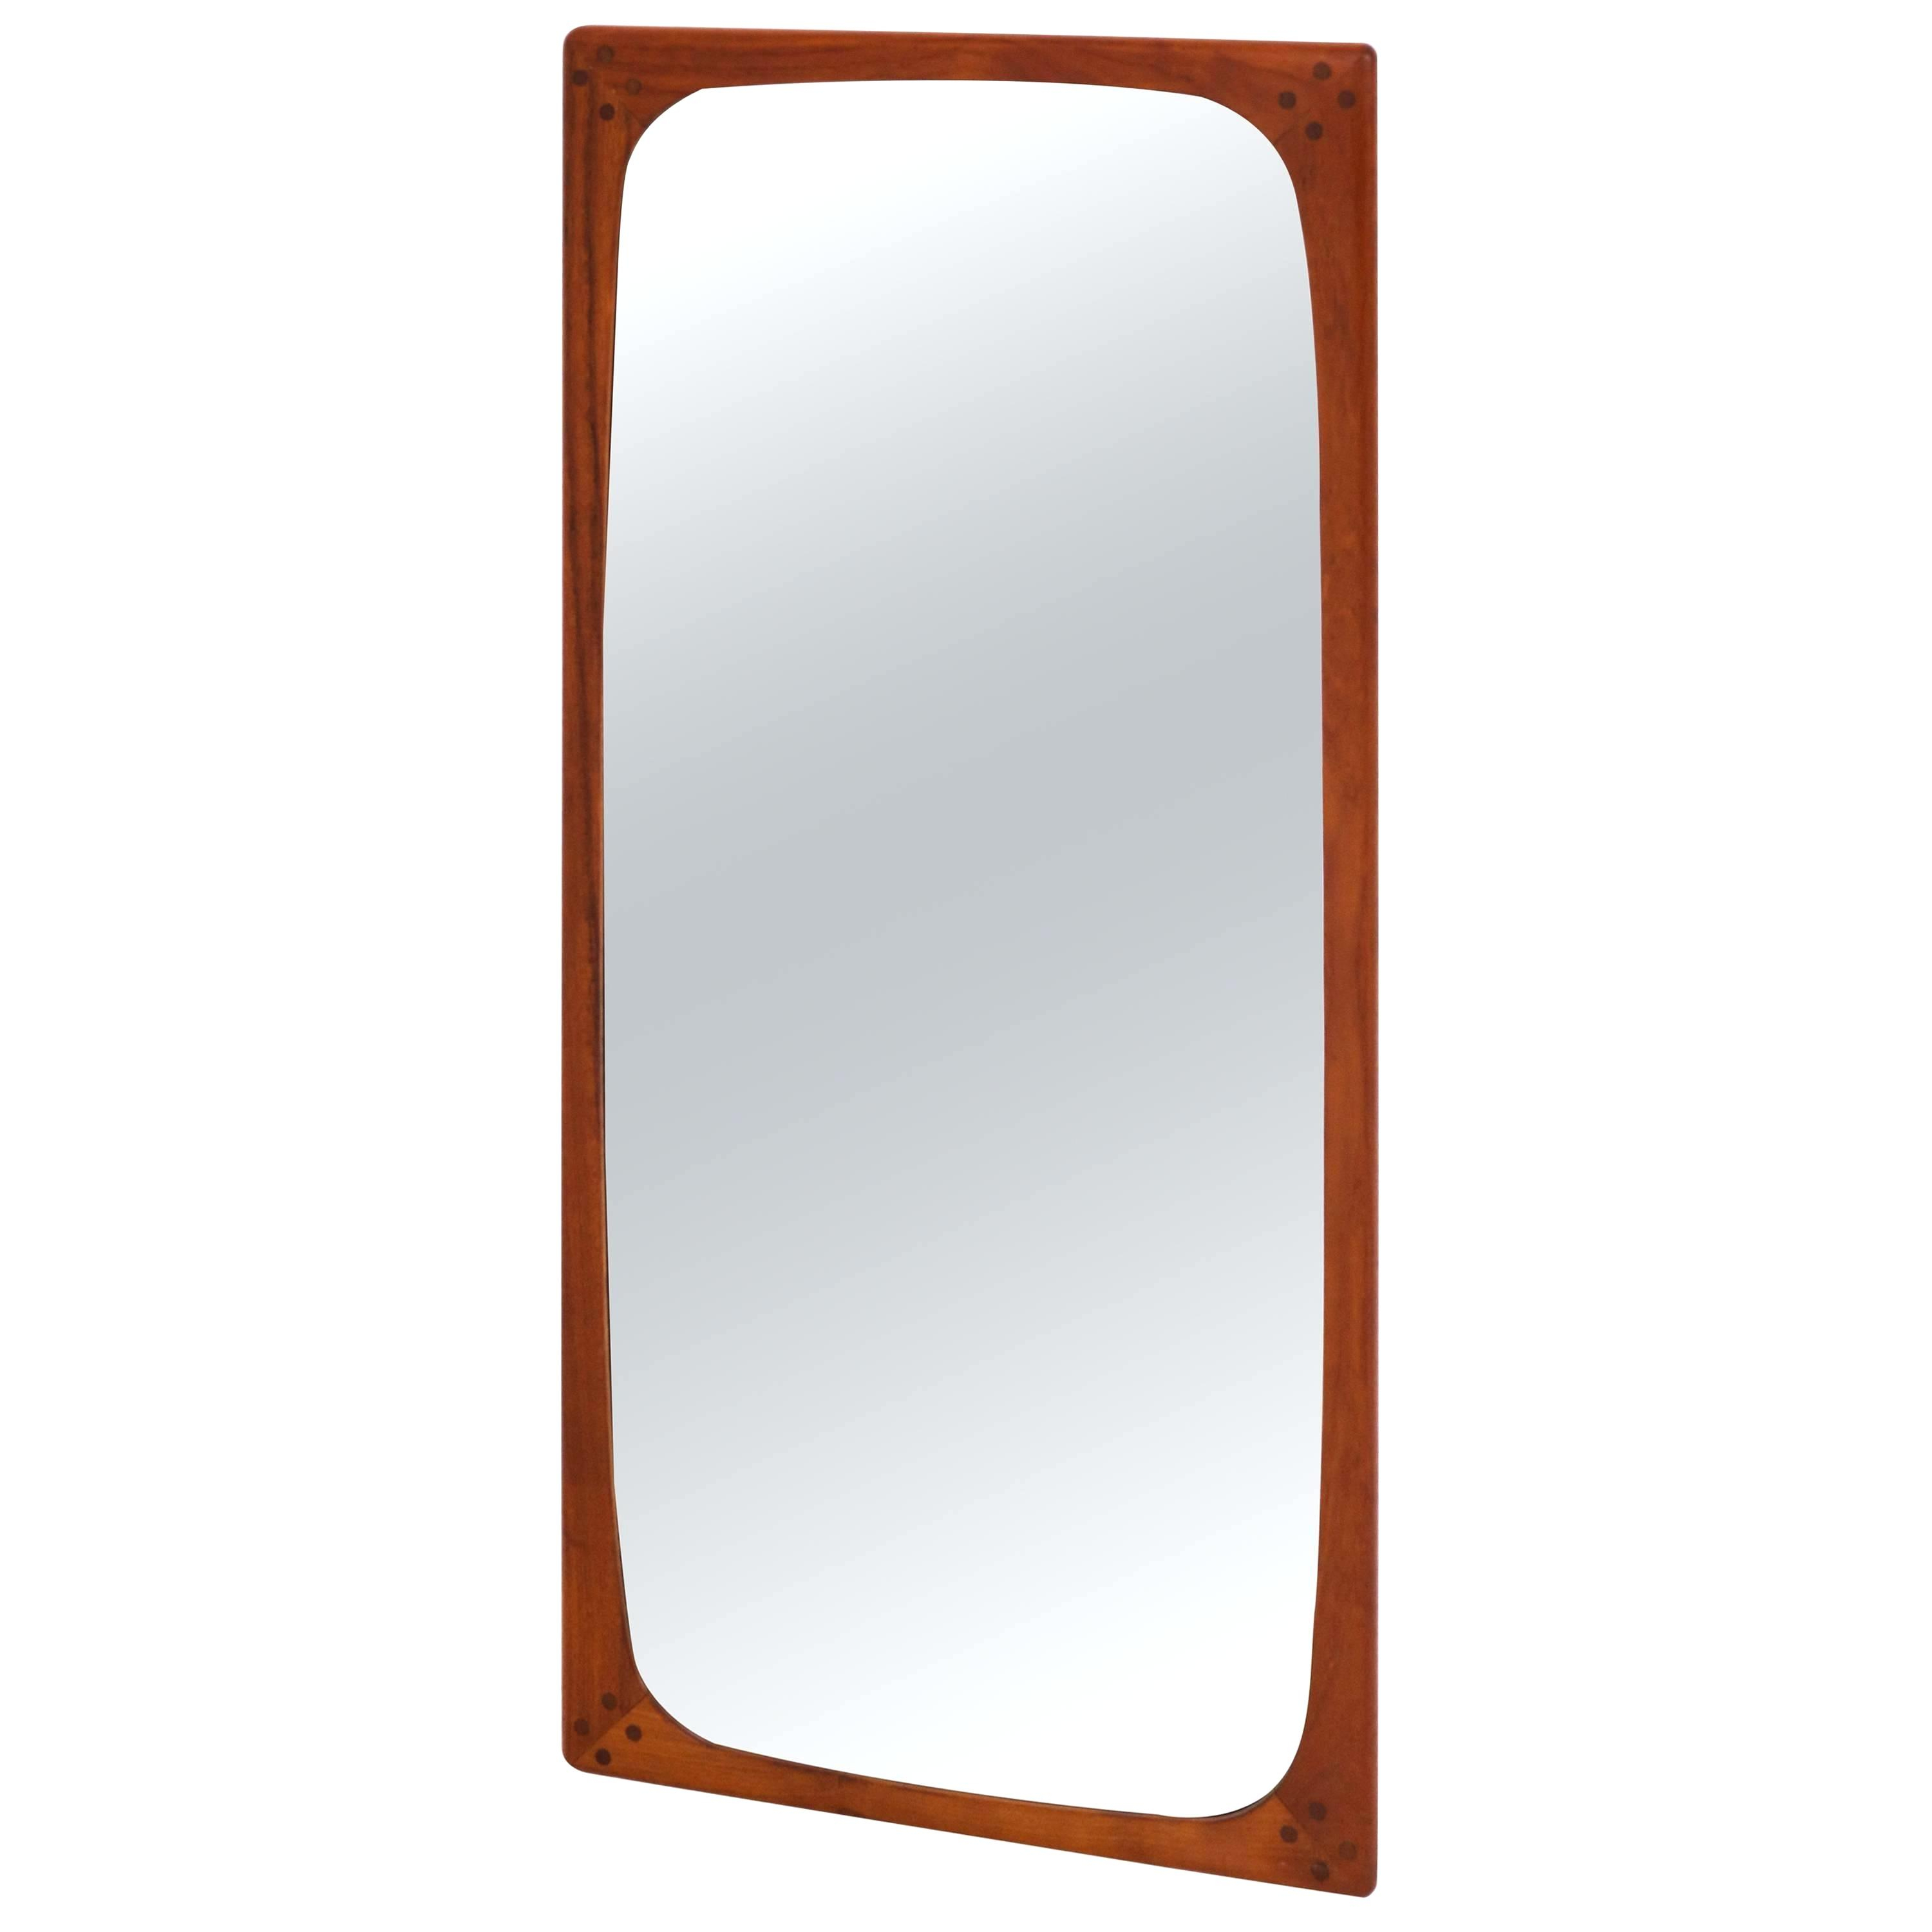 Extra Large Modern Wall Mirrors Contemporary Uk Metal Mirror With Regard To Industrial Modern & Contemporary Wall Mirrors (View 16 of 20)